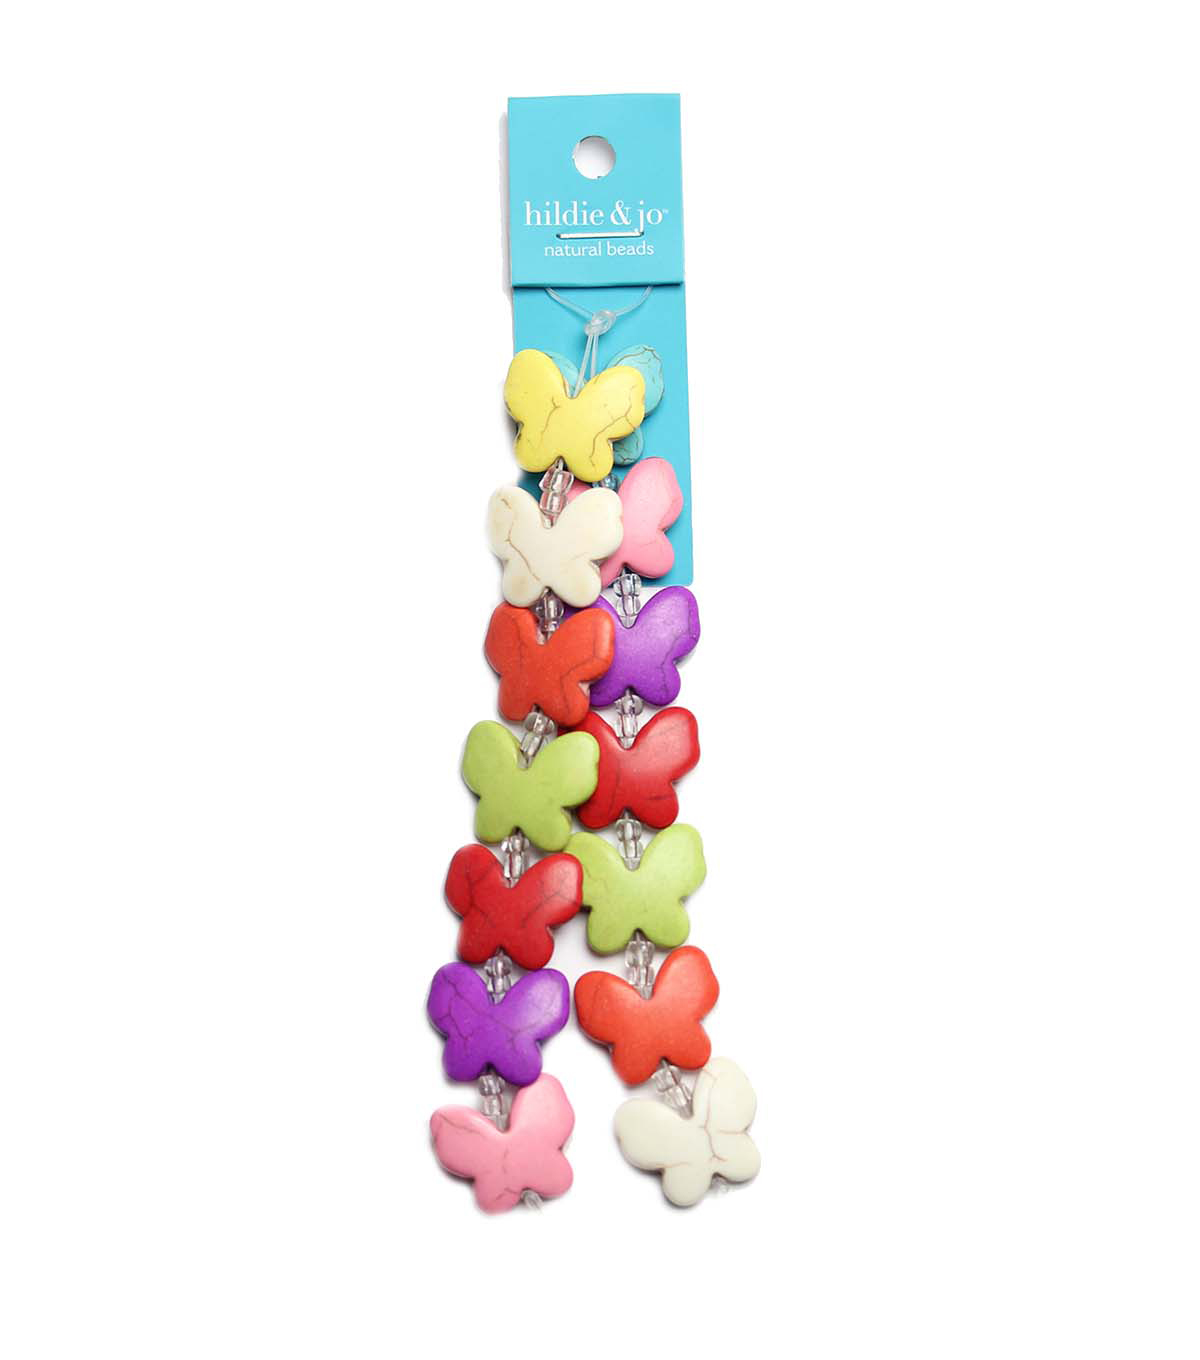 hildie & jo Strung Beads-Butterfly Multi